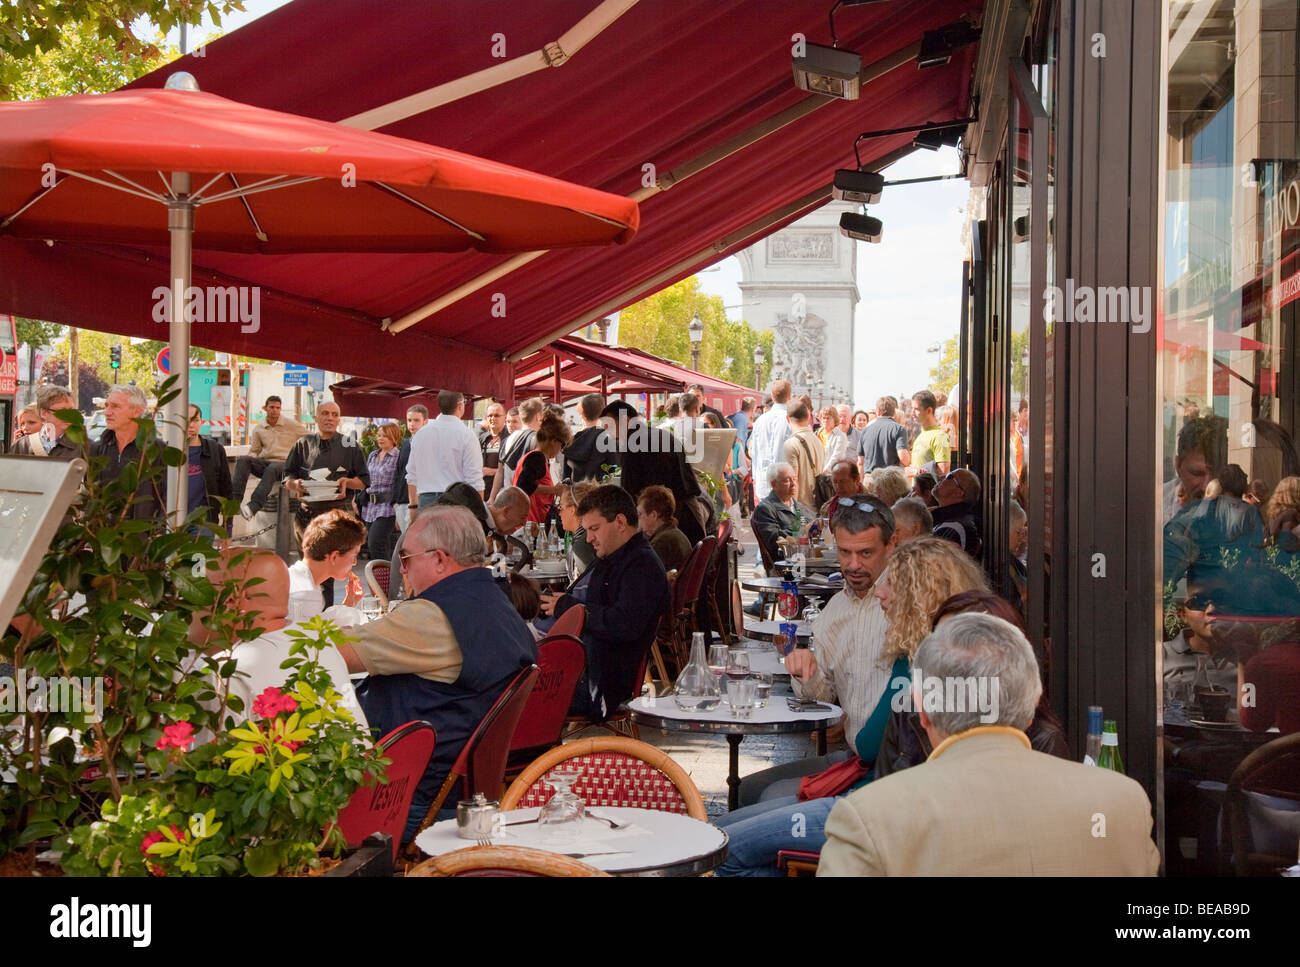 Cafes on the Champs Elysees in Paris - Stock Image